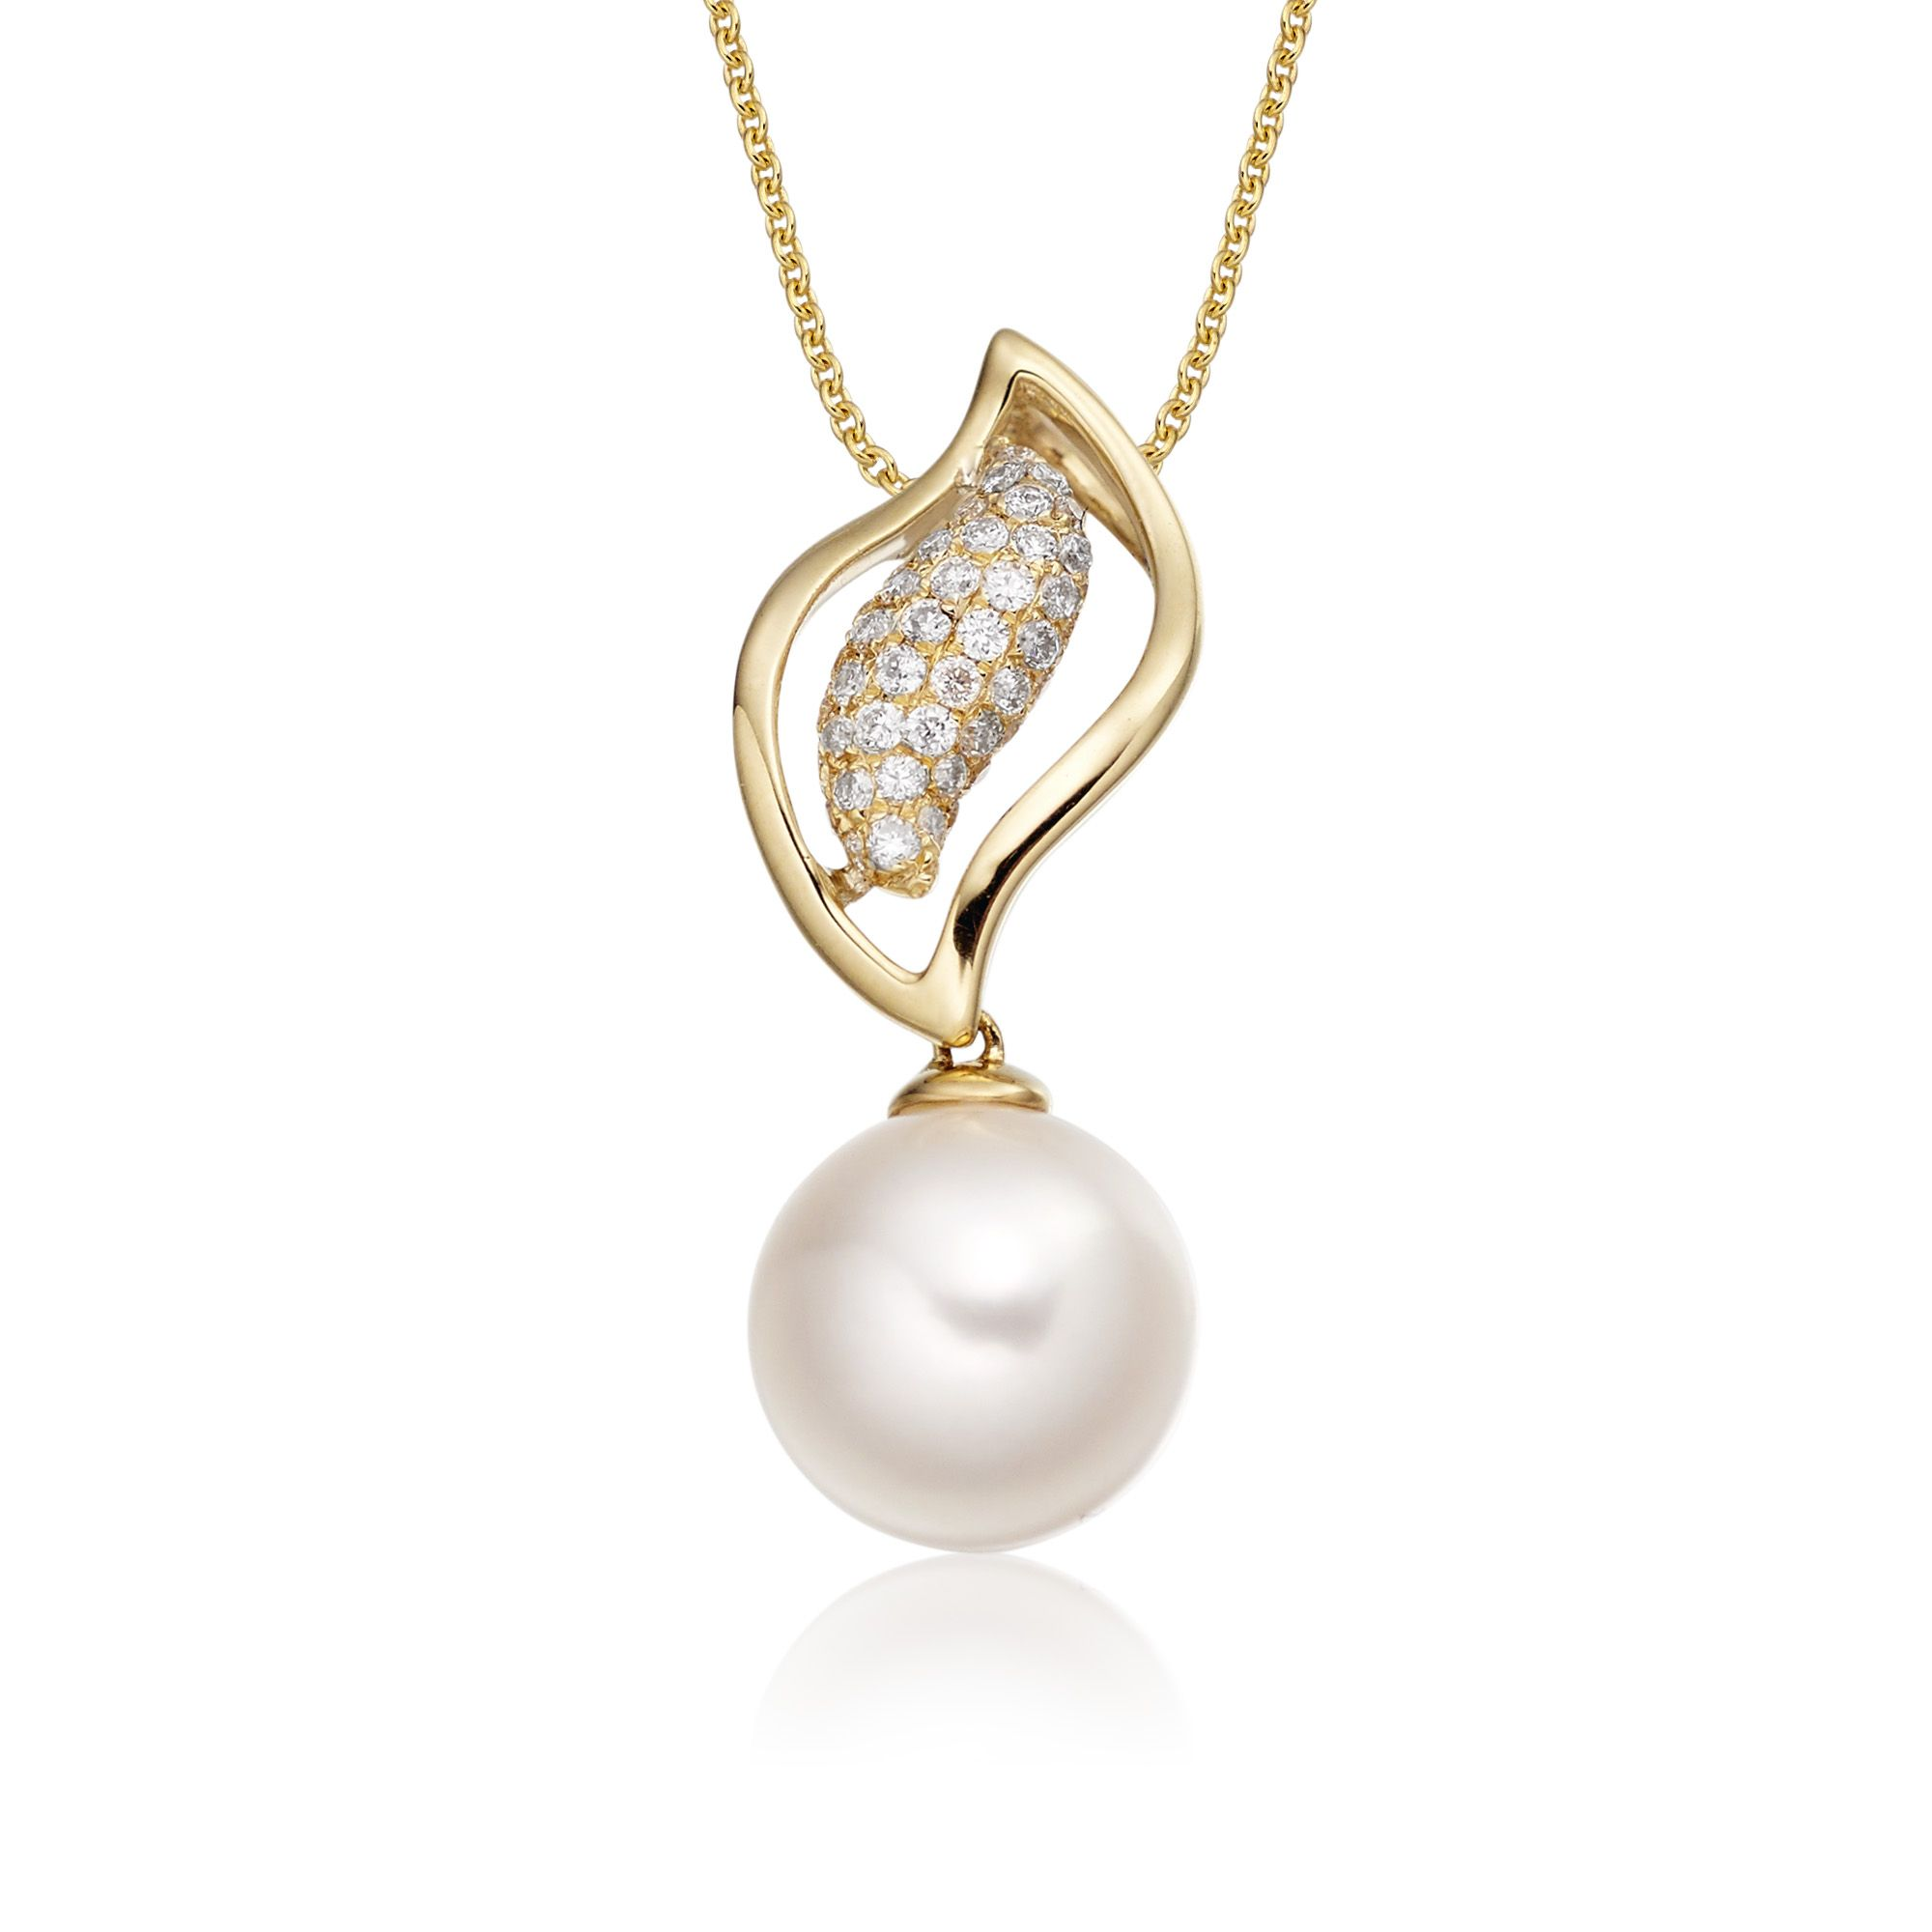 This beautiful freshwater cultured pearl and diamond necklace has 0.15ct brilliant cut round diamonds set to compliment this beautiful 8mm white freshwater pearl. This necklace is made in 9K yellow gold and comes complete with a beautiful mirror trace chain.